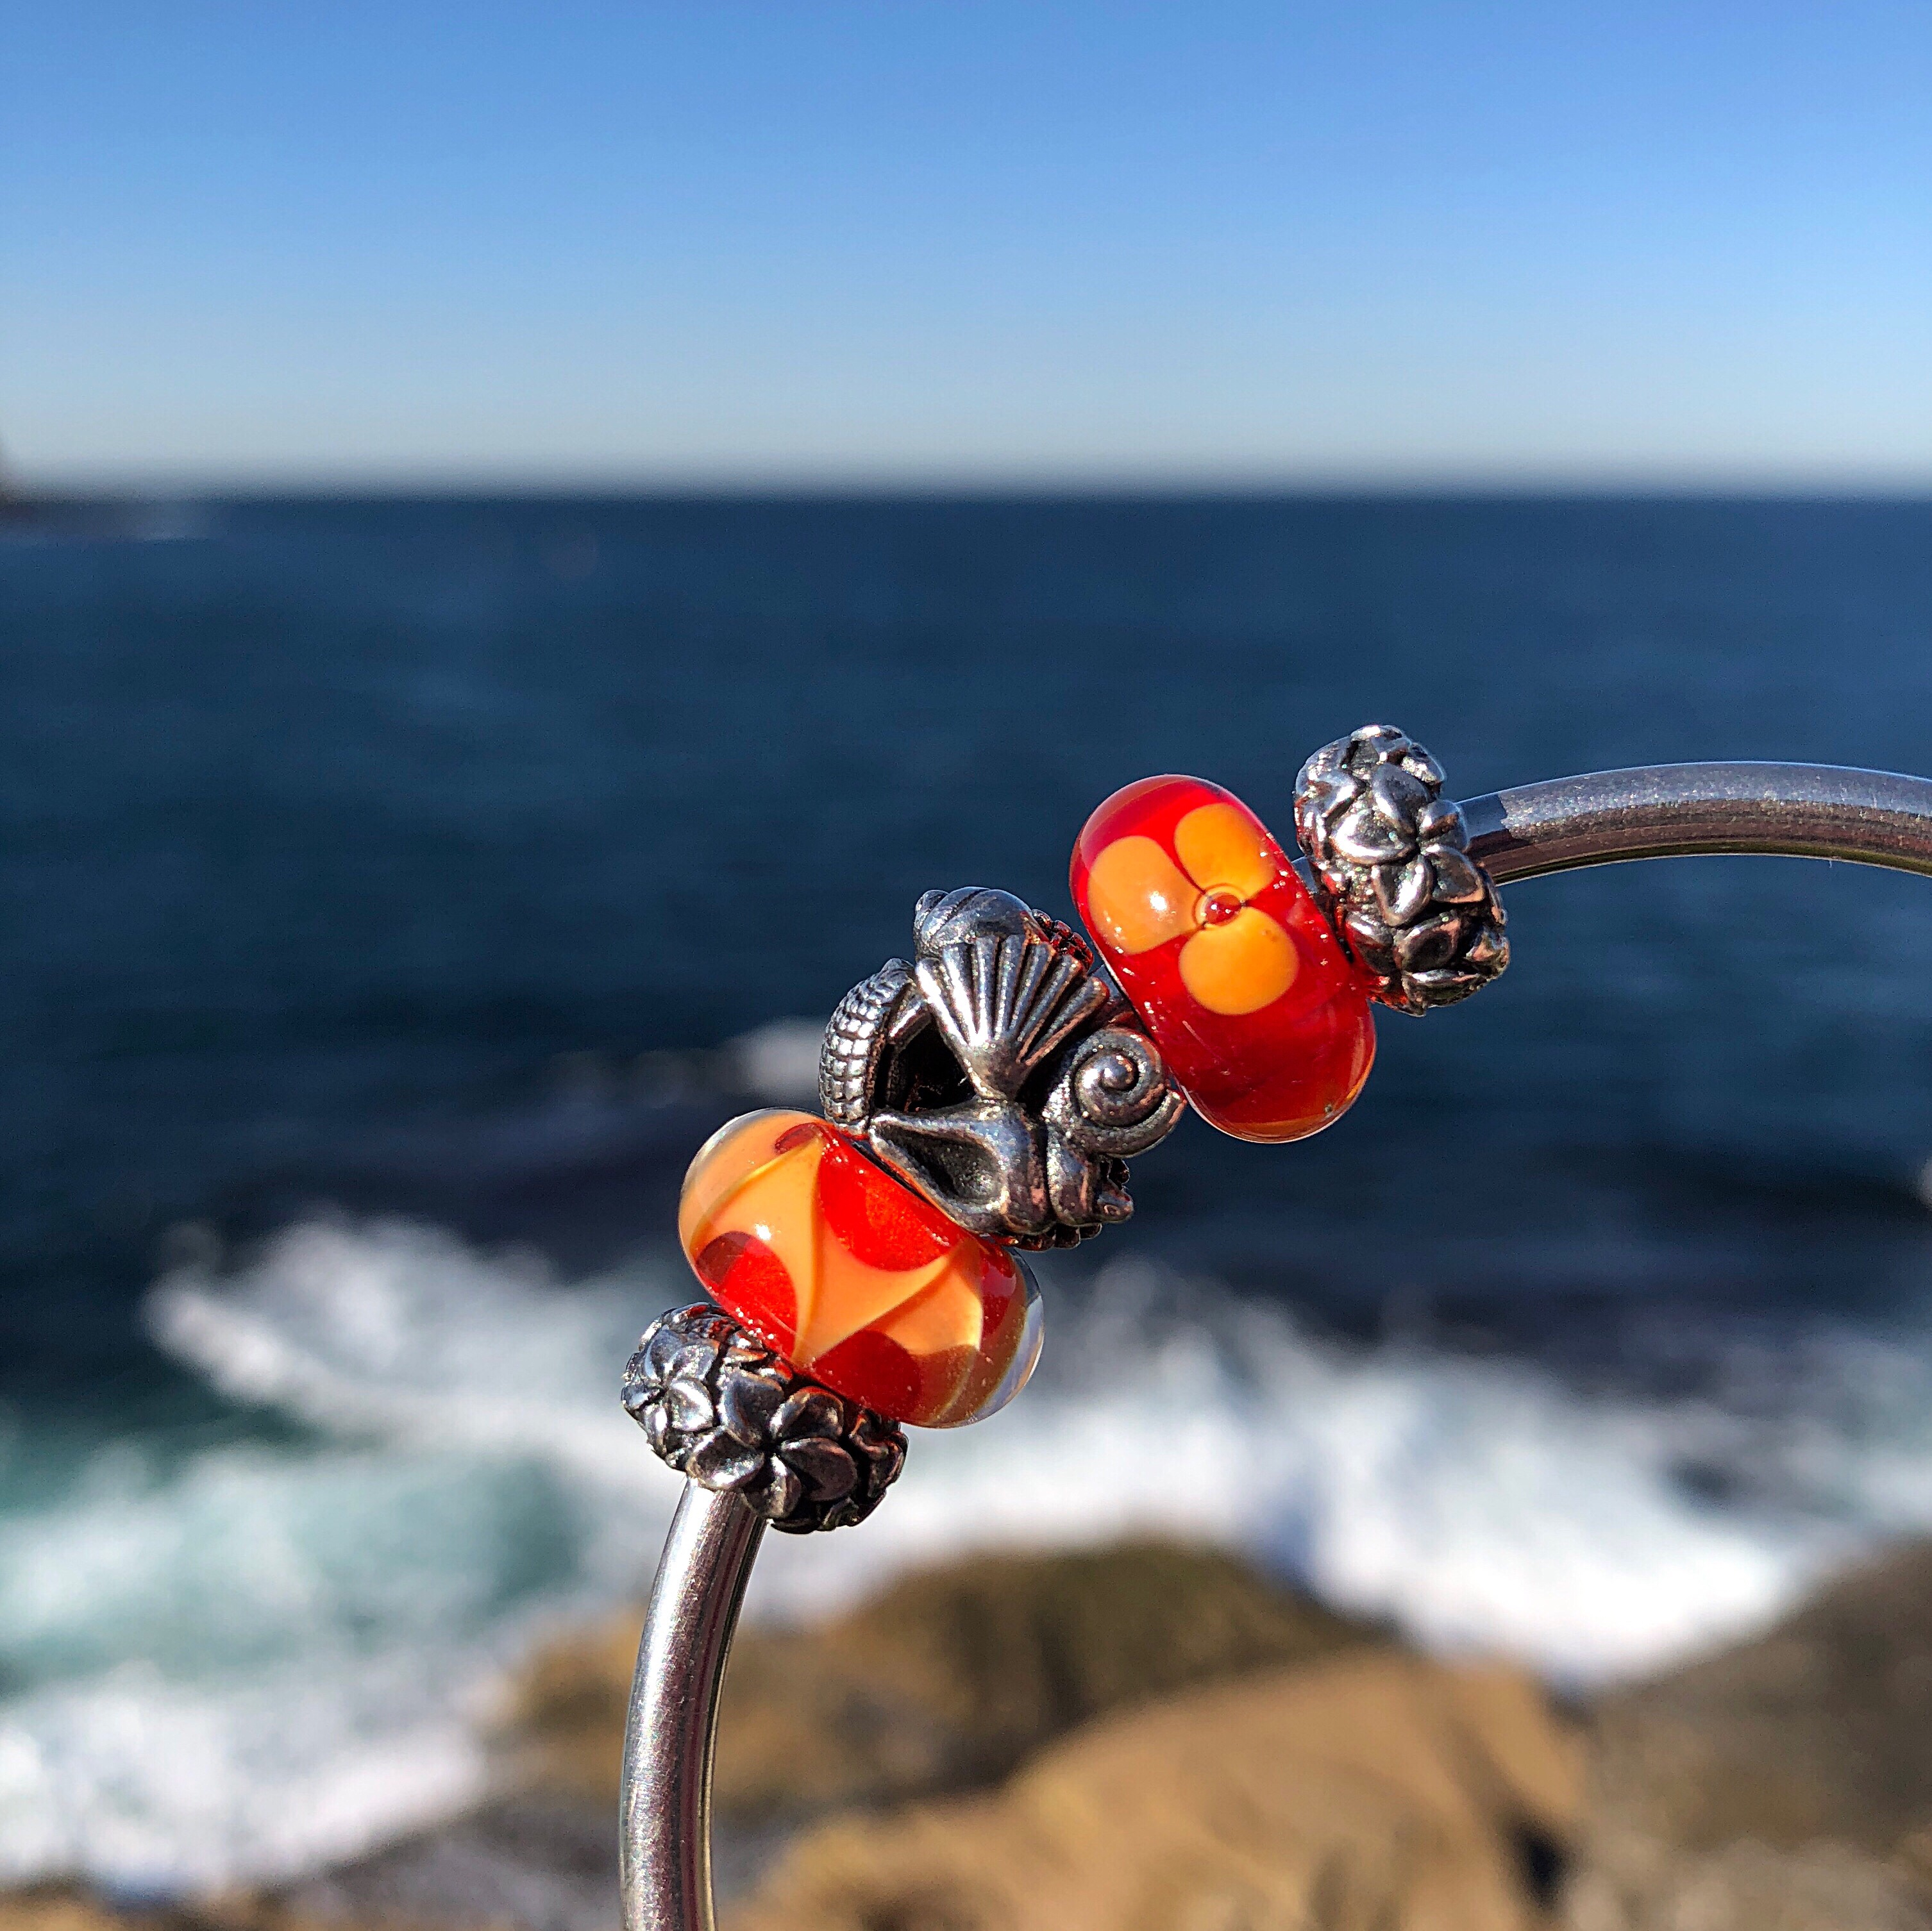 New With Trollbeads Pouch. Reliable Genuine Trollbeads Scirocco Bead Only Wallpapers